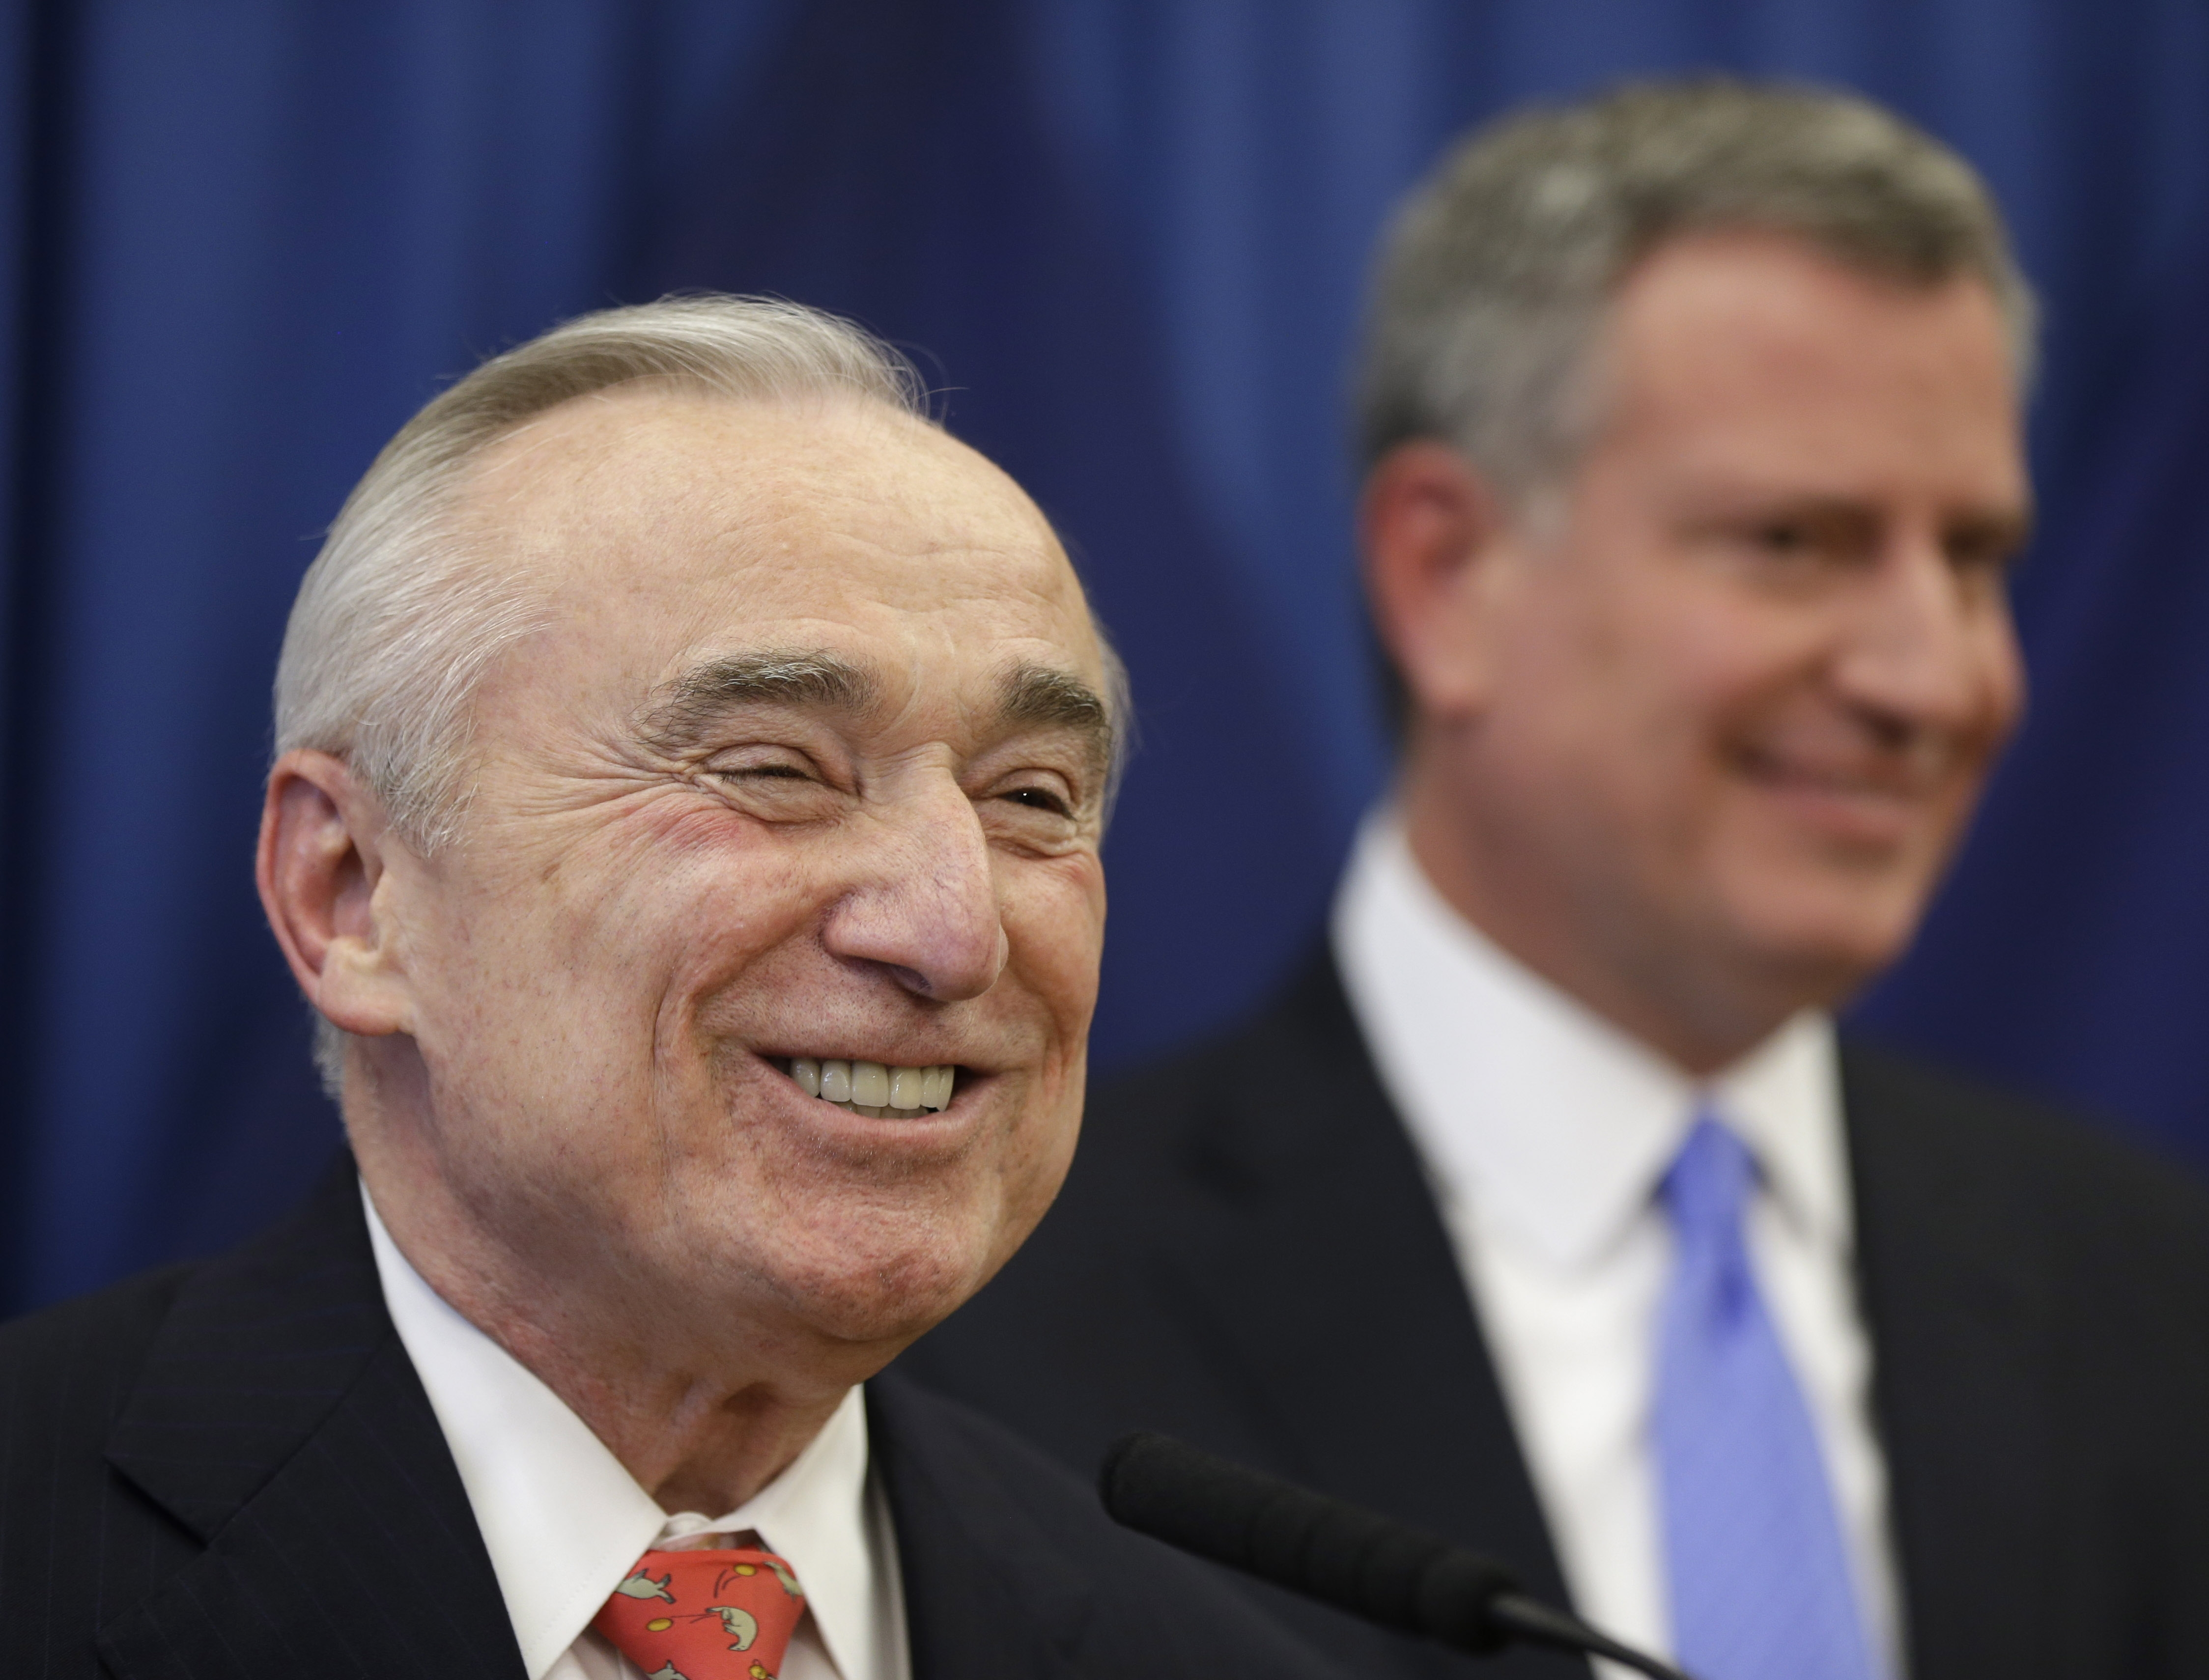 Incoming-NYPD-commissioner-William-Bratton-and-mayor-elect-Bill-de-Blasio-AP-PhotoSeth-Wenig